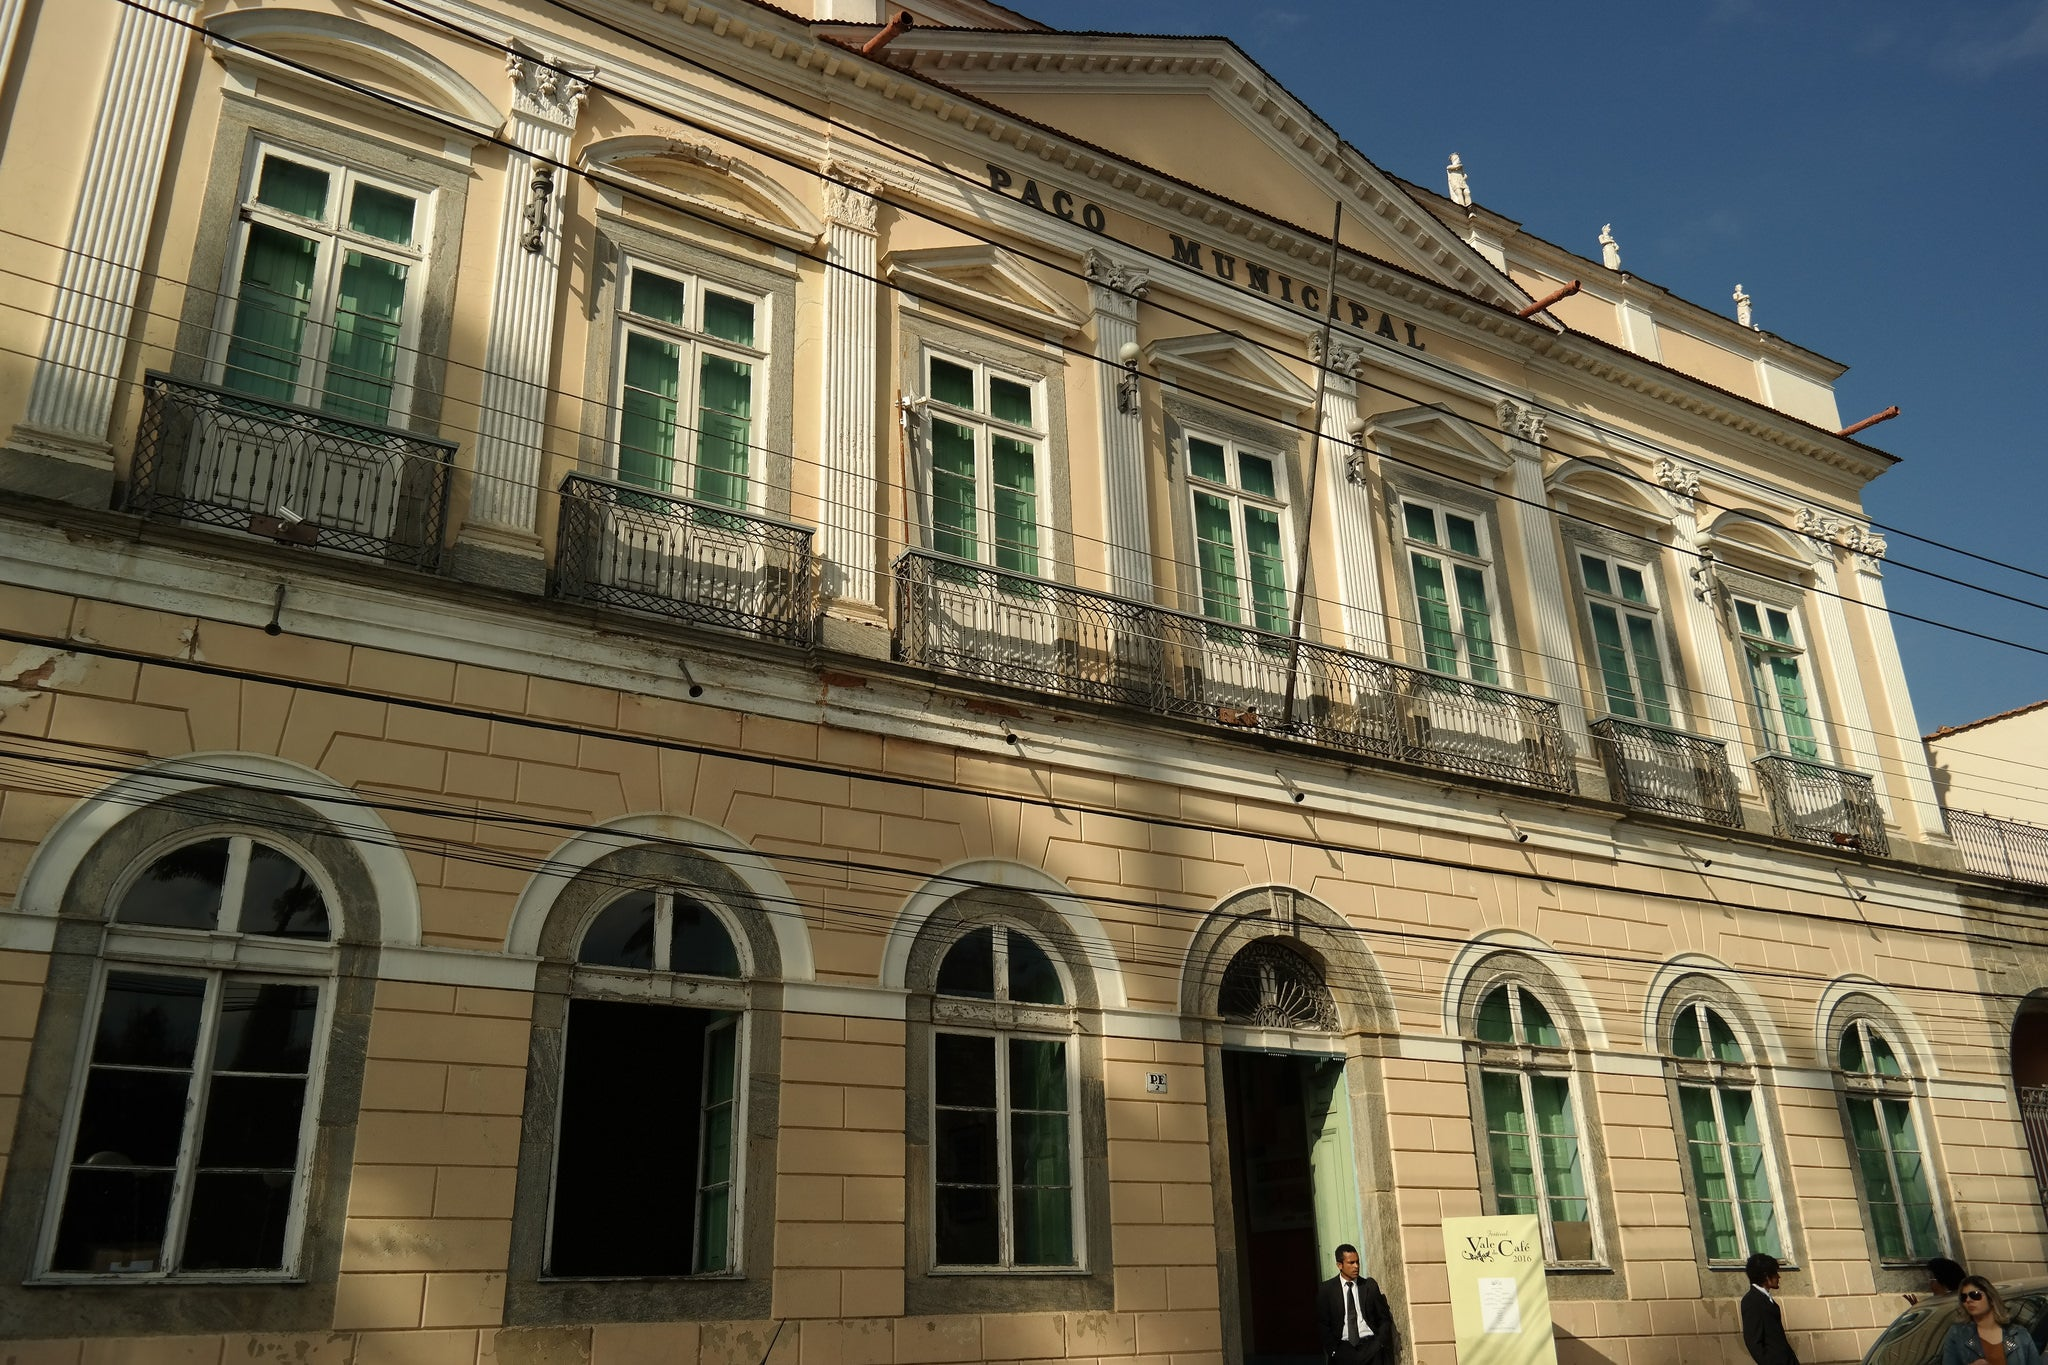 Paço Municipal de Vassouras (Palacete do Barão do Ribeirão e do Visconde de Cananéia)